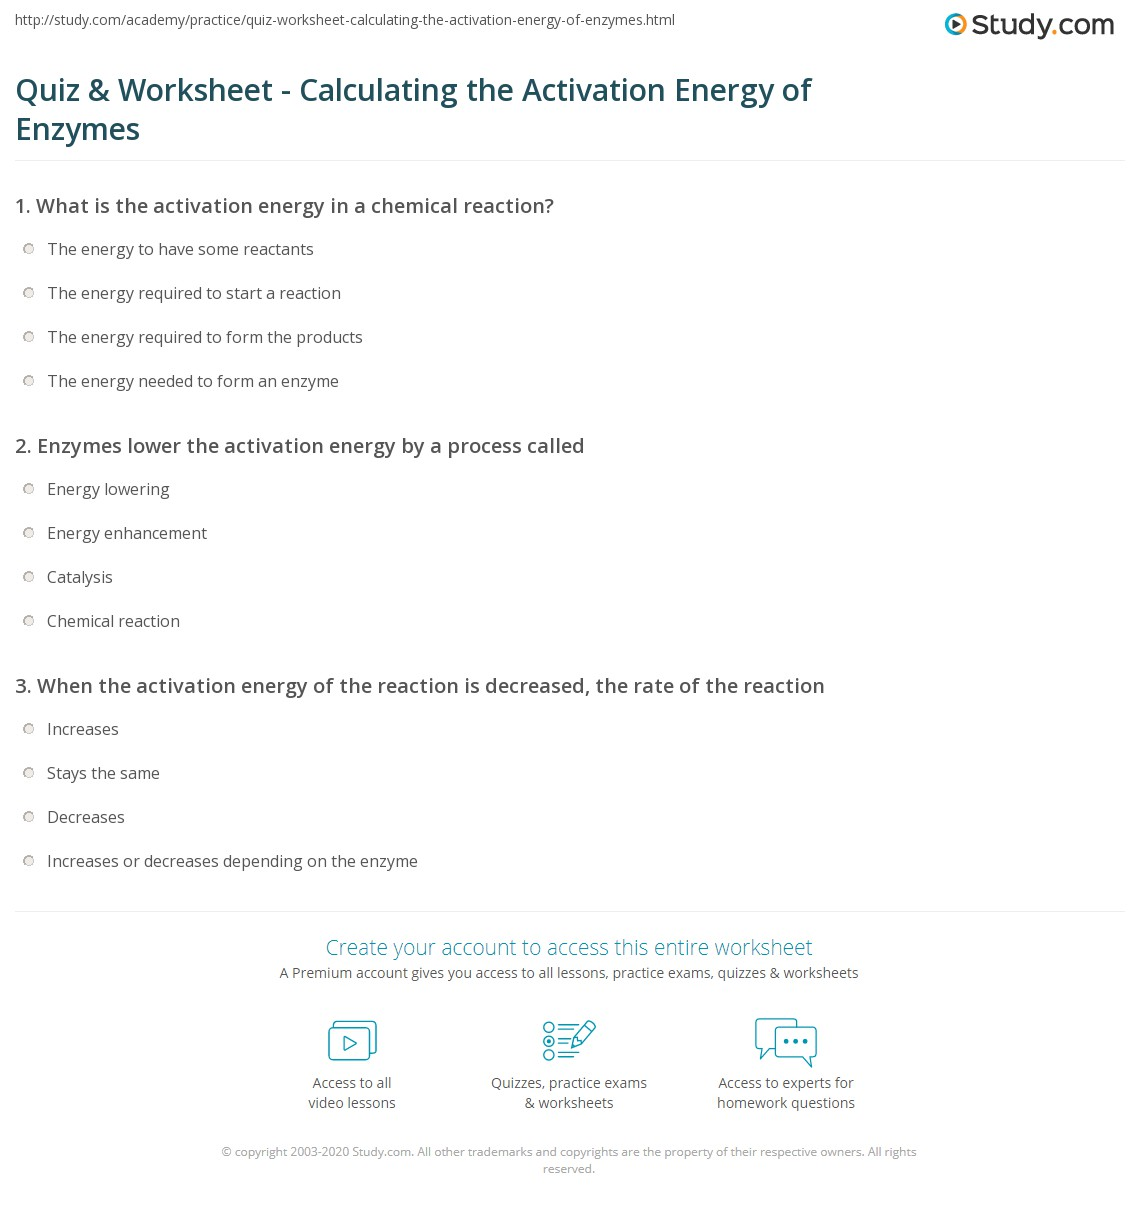 Quiz & Worksheet - Calculating the Activation Energy of Enzymes ...